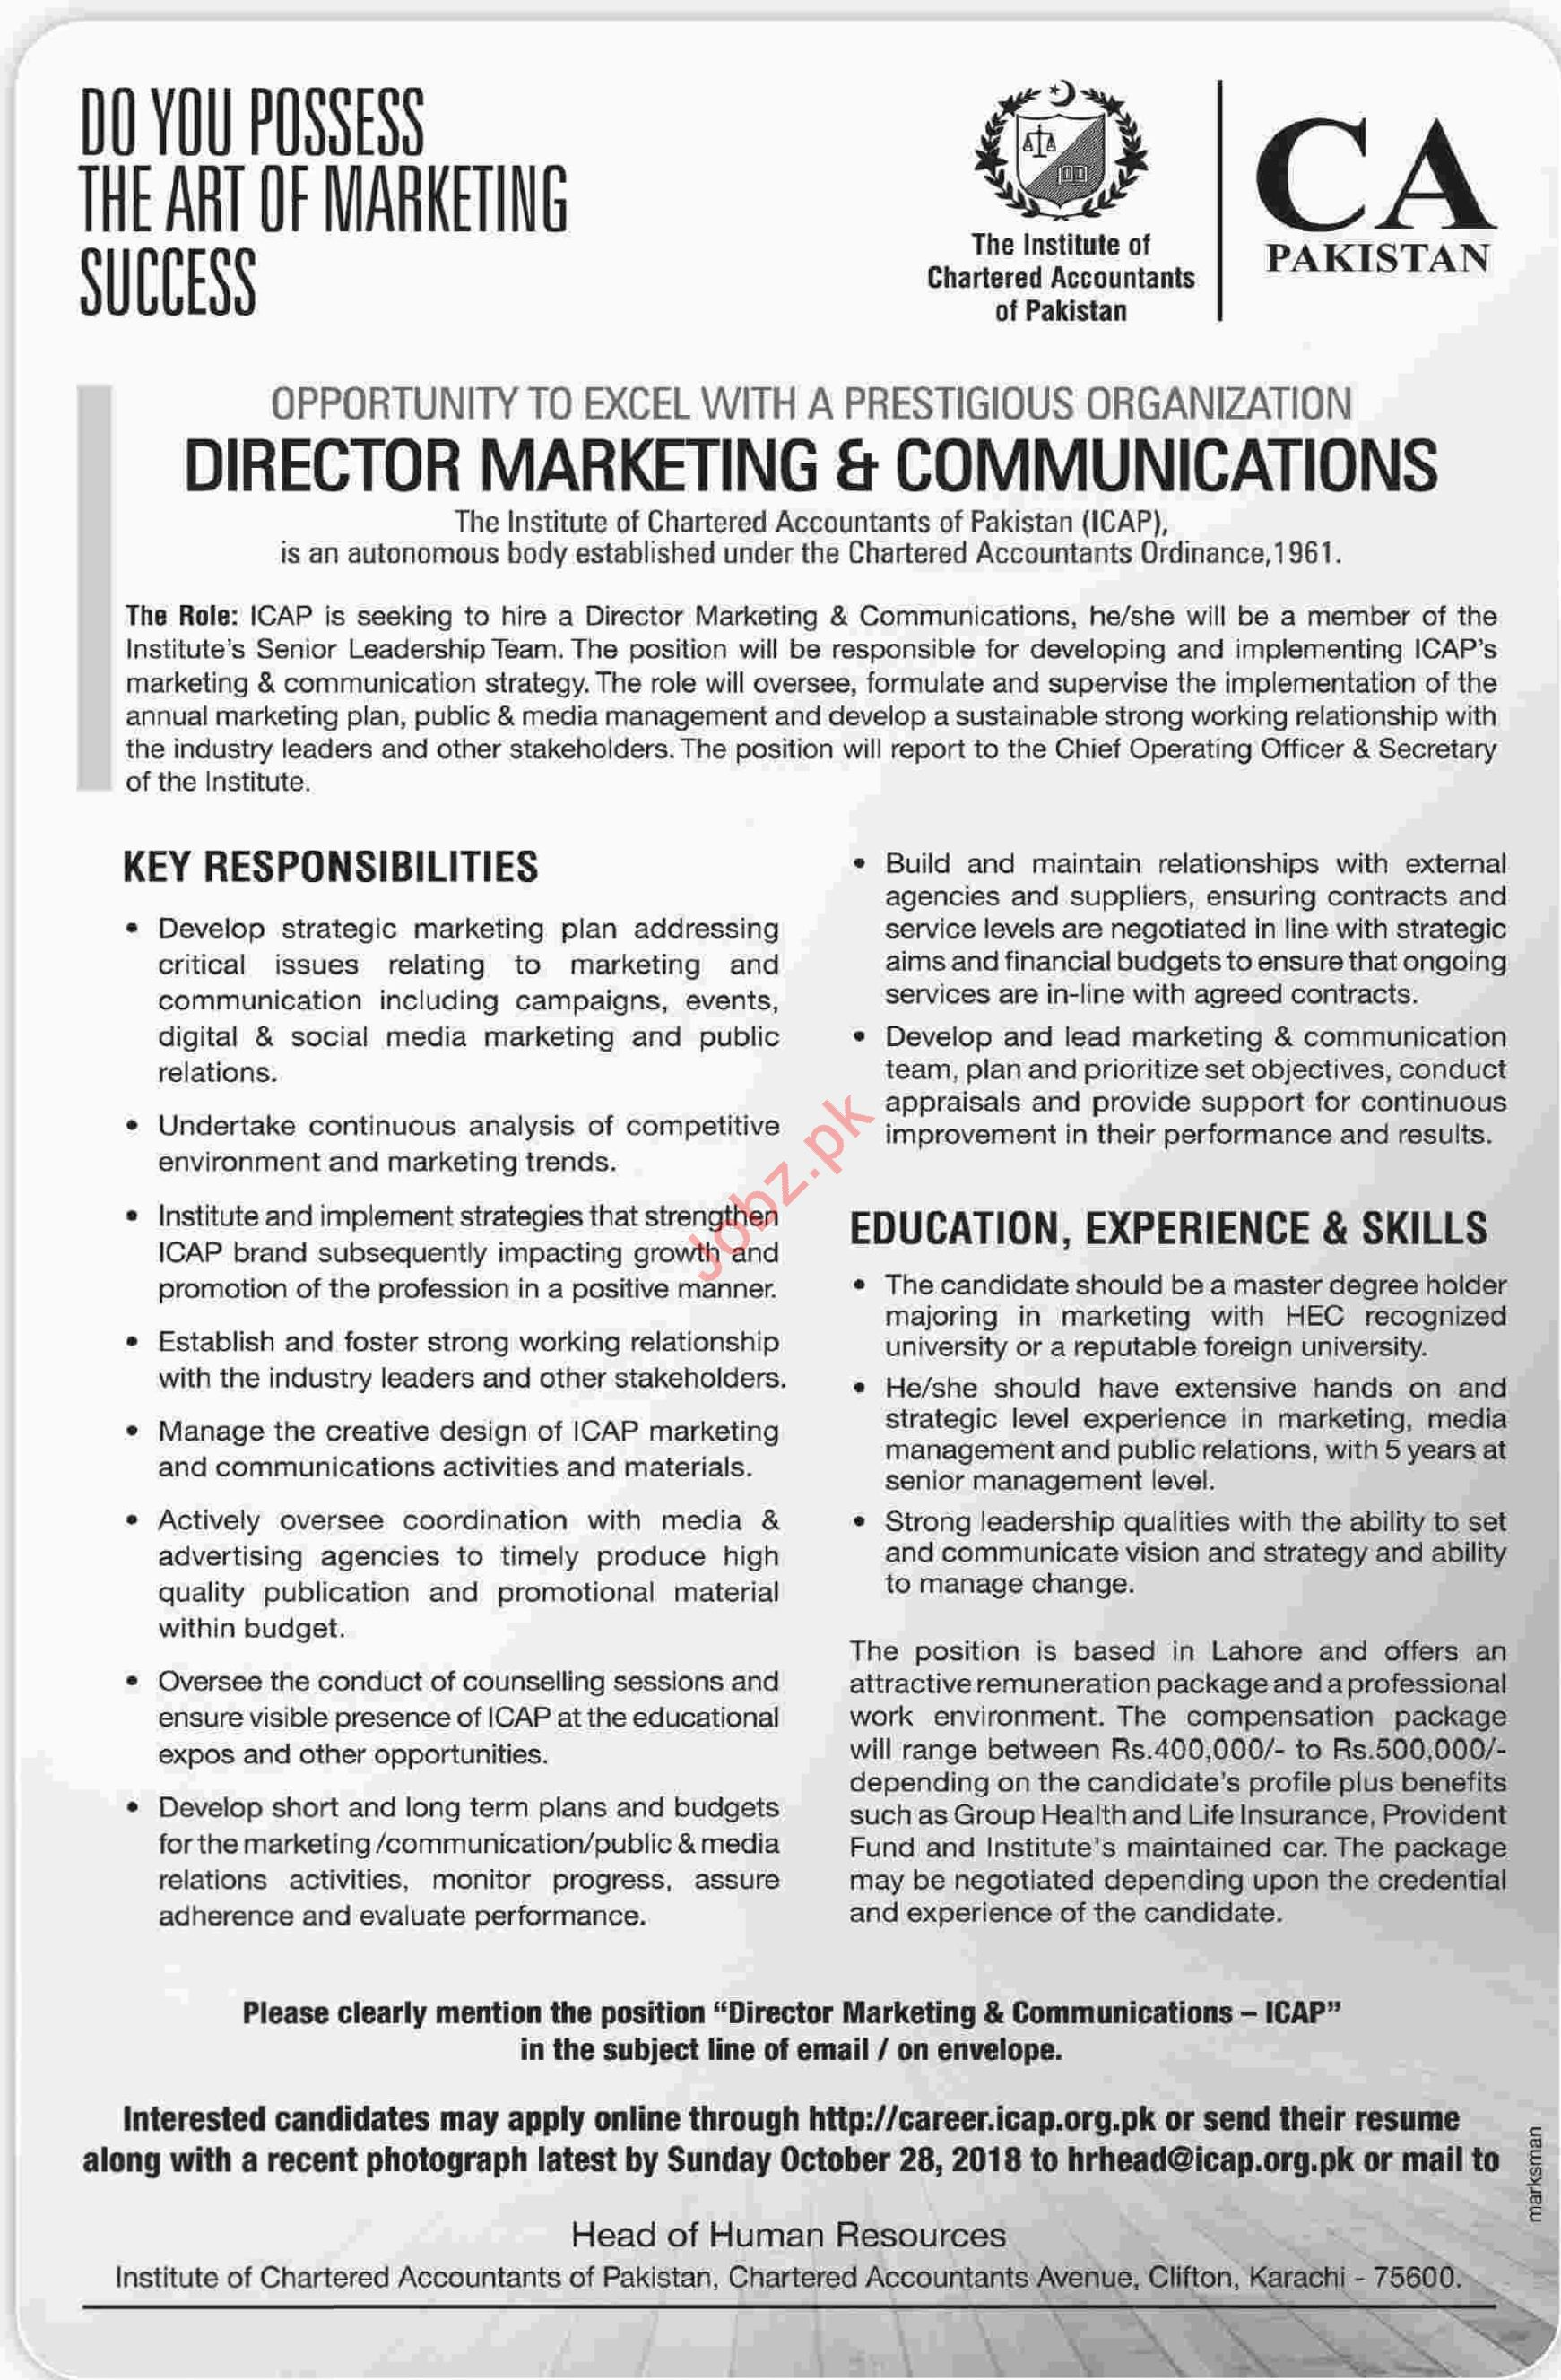 CA Pakistan Director Marketing and Communications Jobs